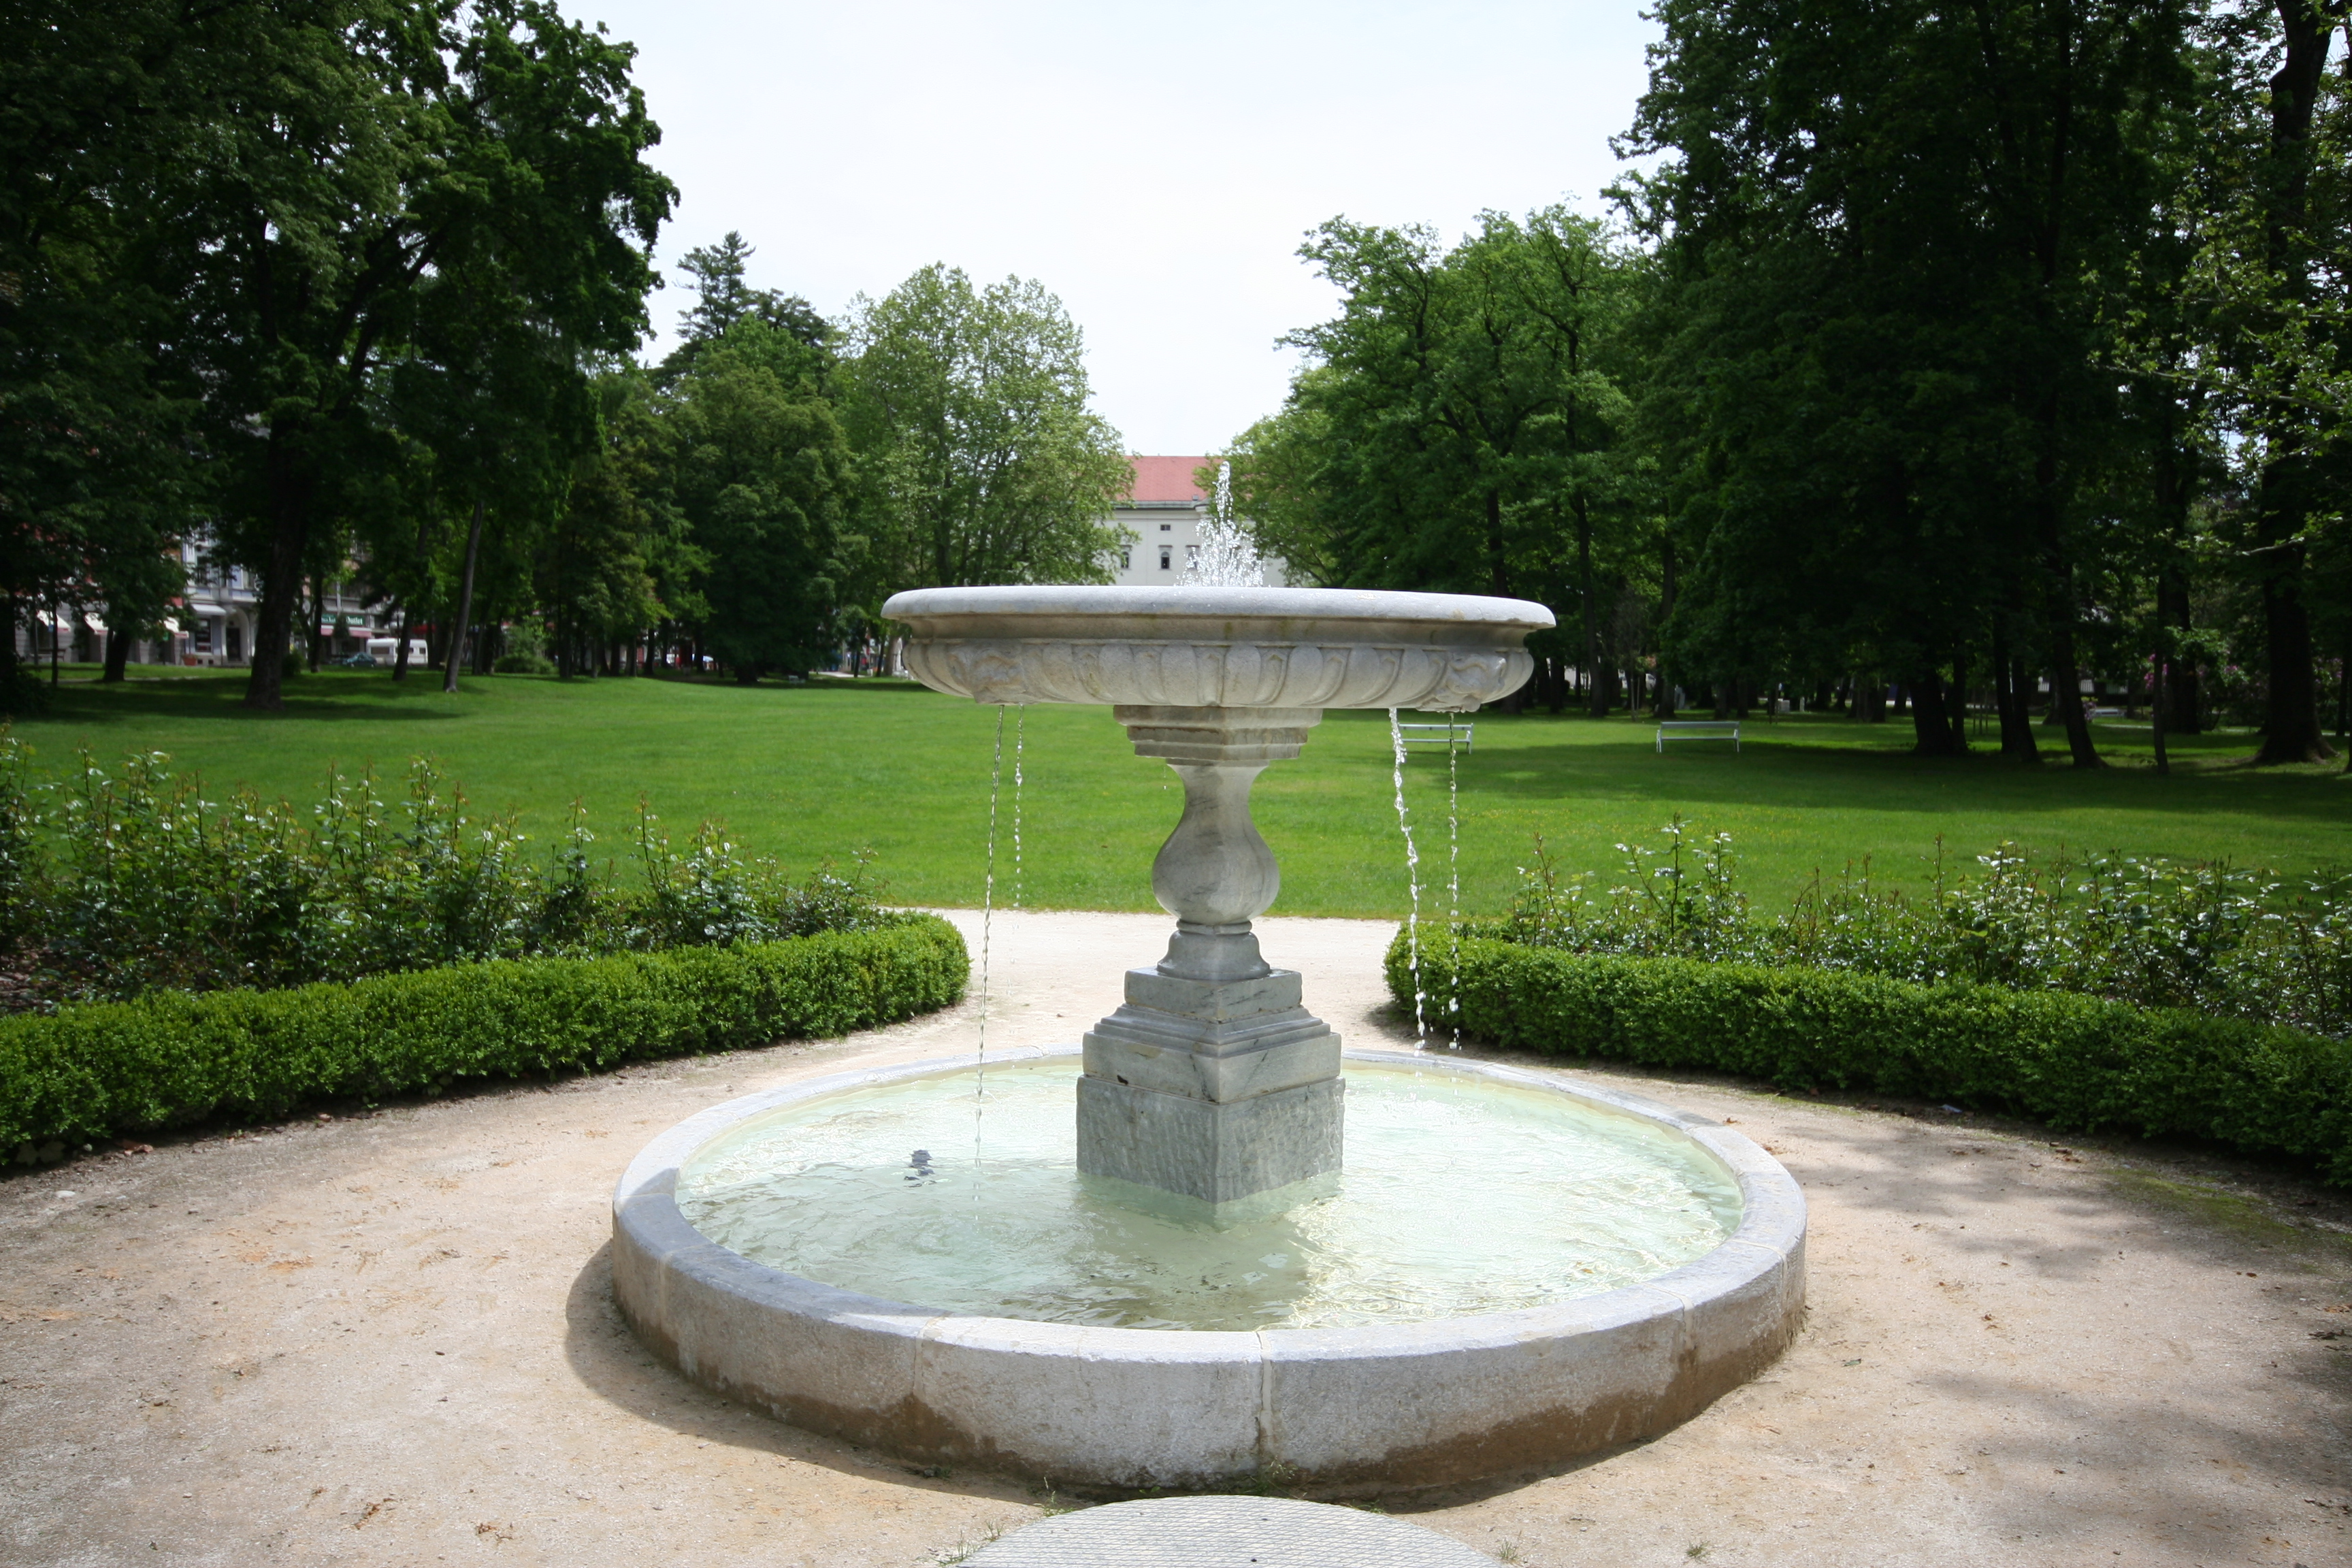 file kleiner springbrunnen im schlosspark in spittal an der drau jpg wikimedia commons. Black Bedroom Furniture Sets. Home Design Ideas